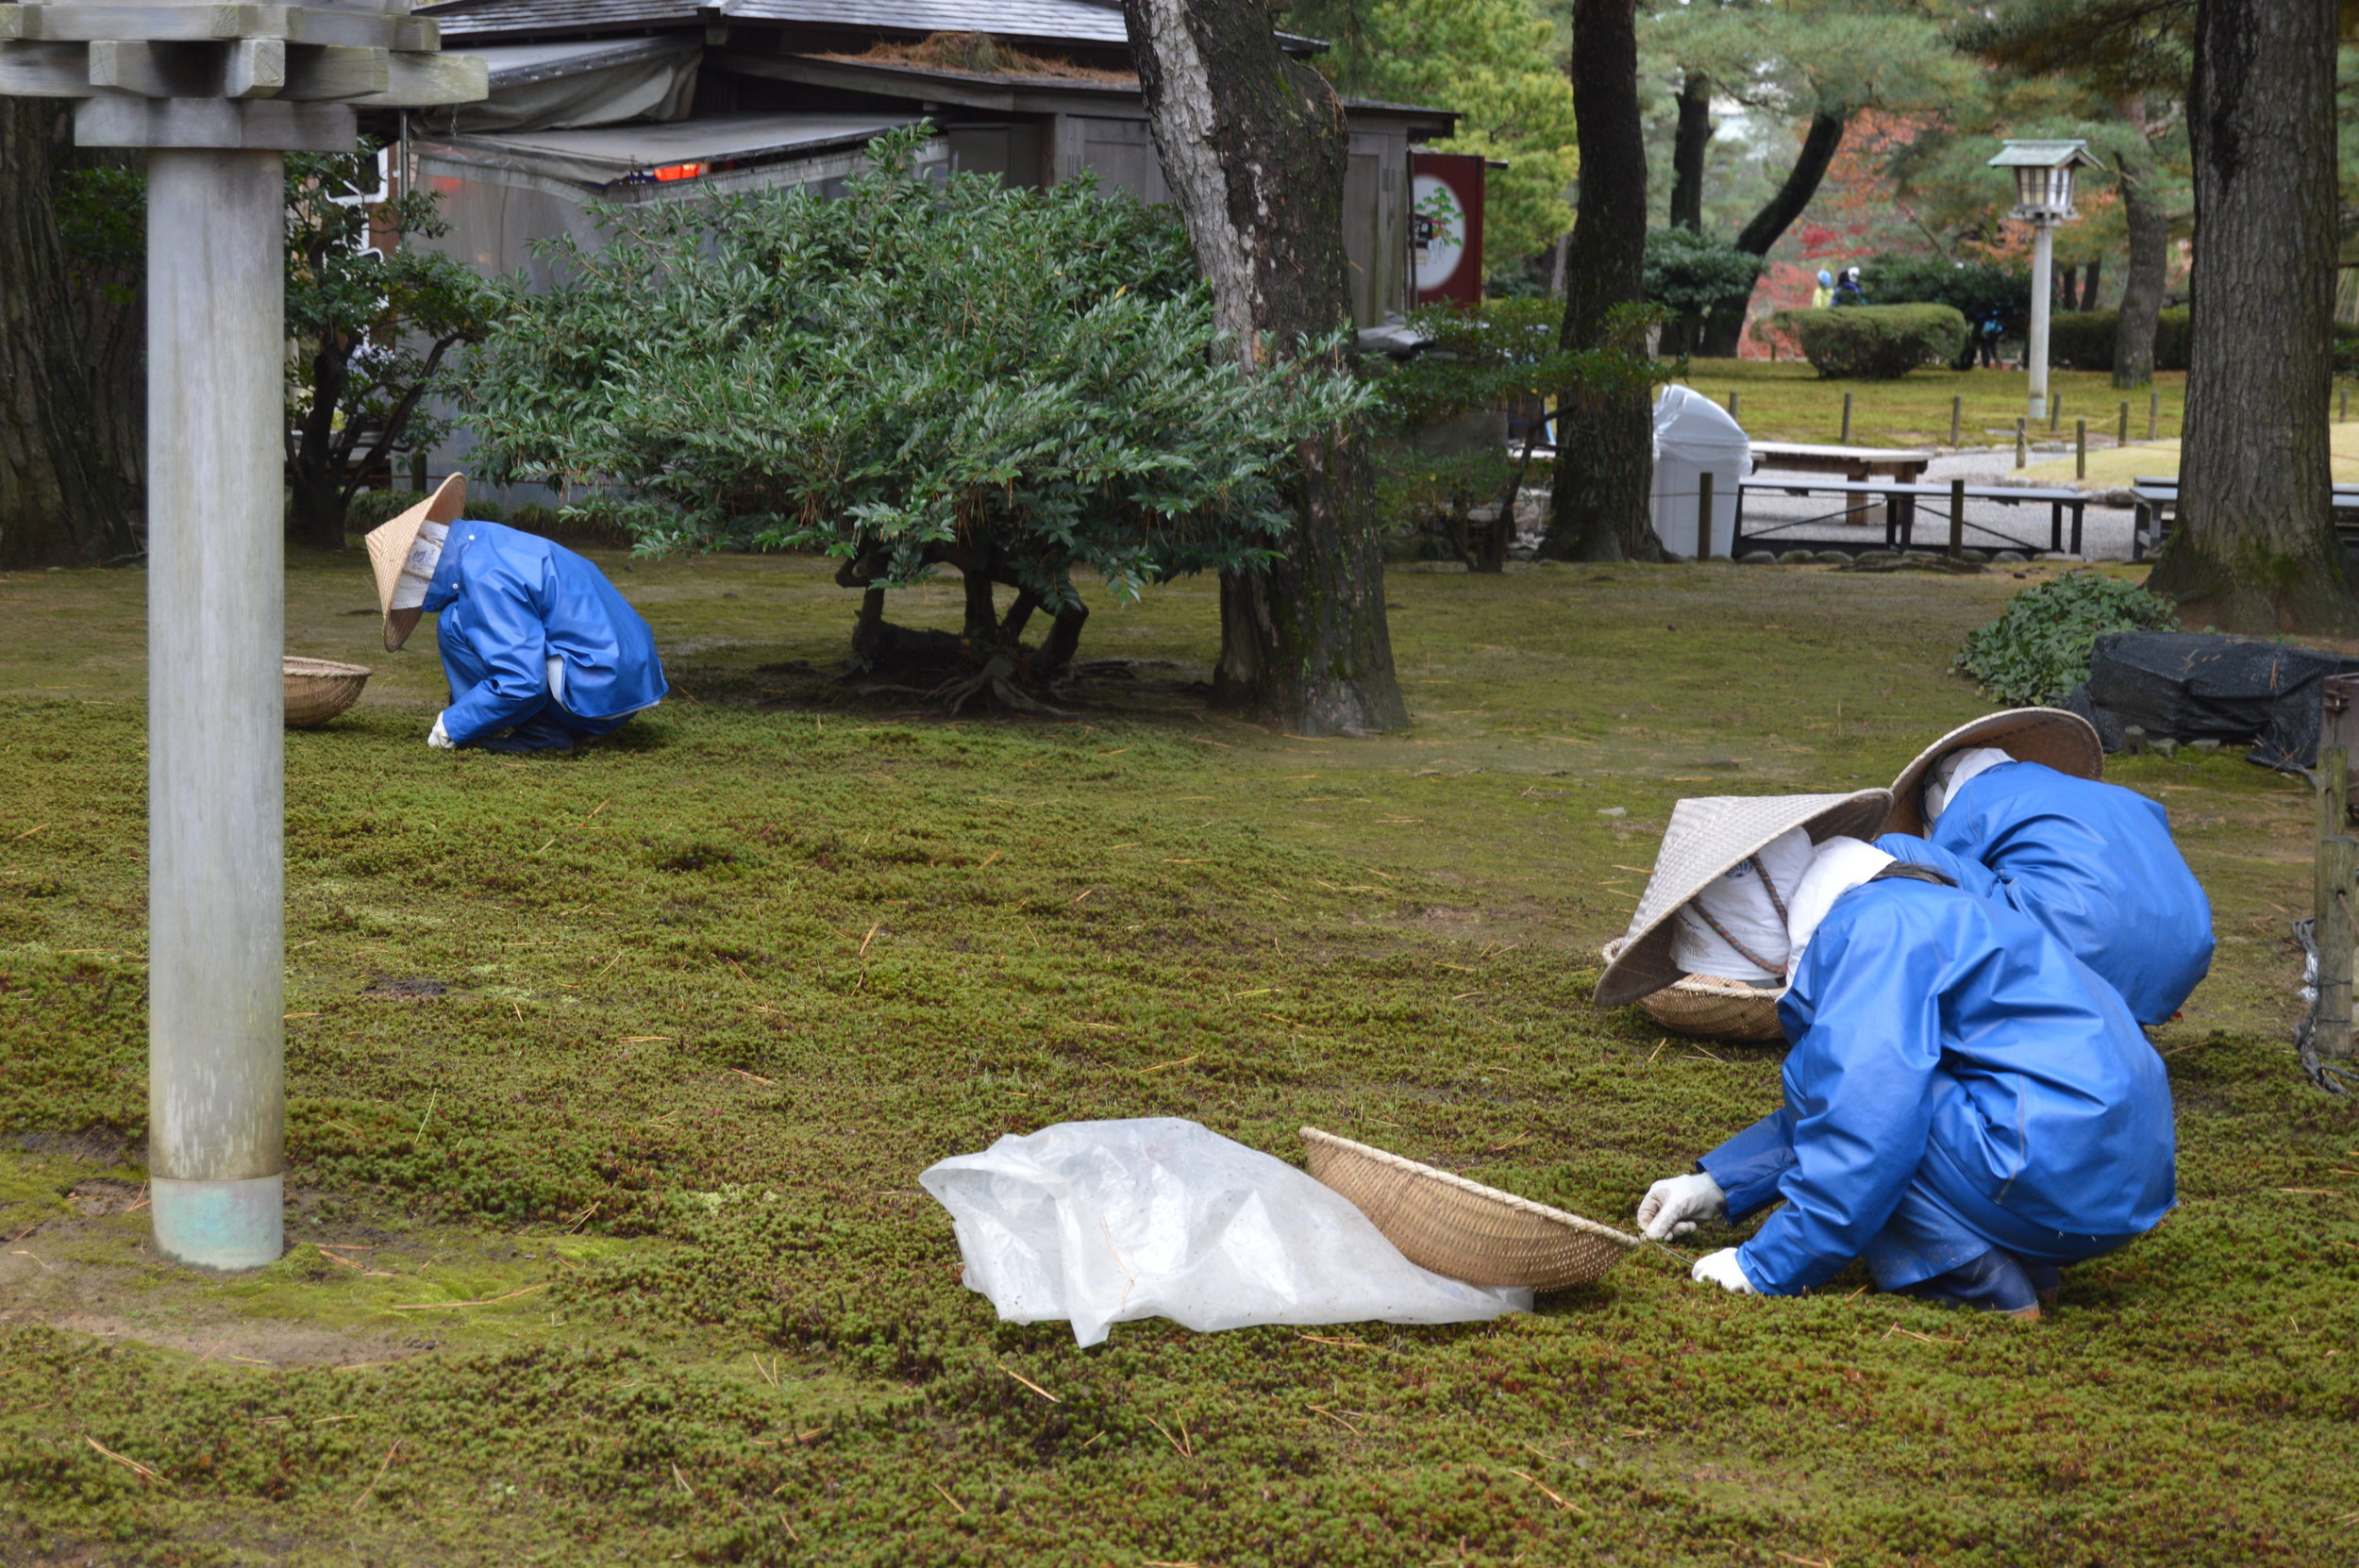 Three people cleaning part of a garden in the city of Kanazawa.